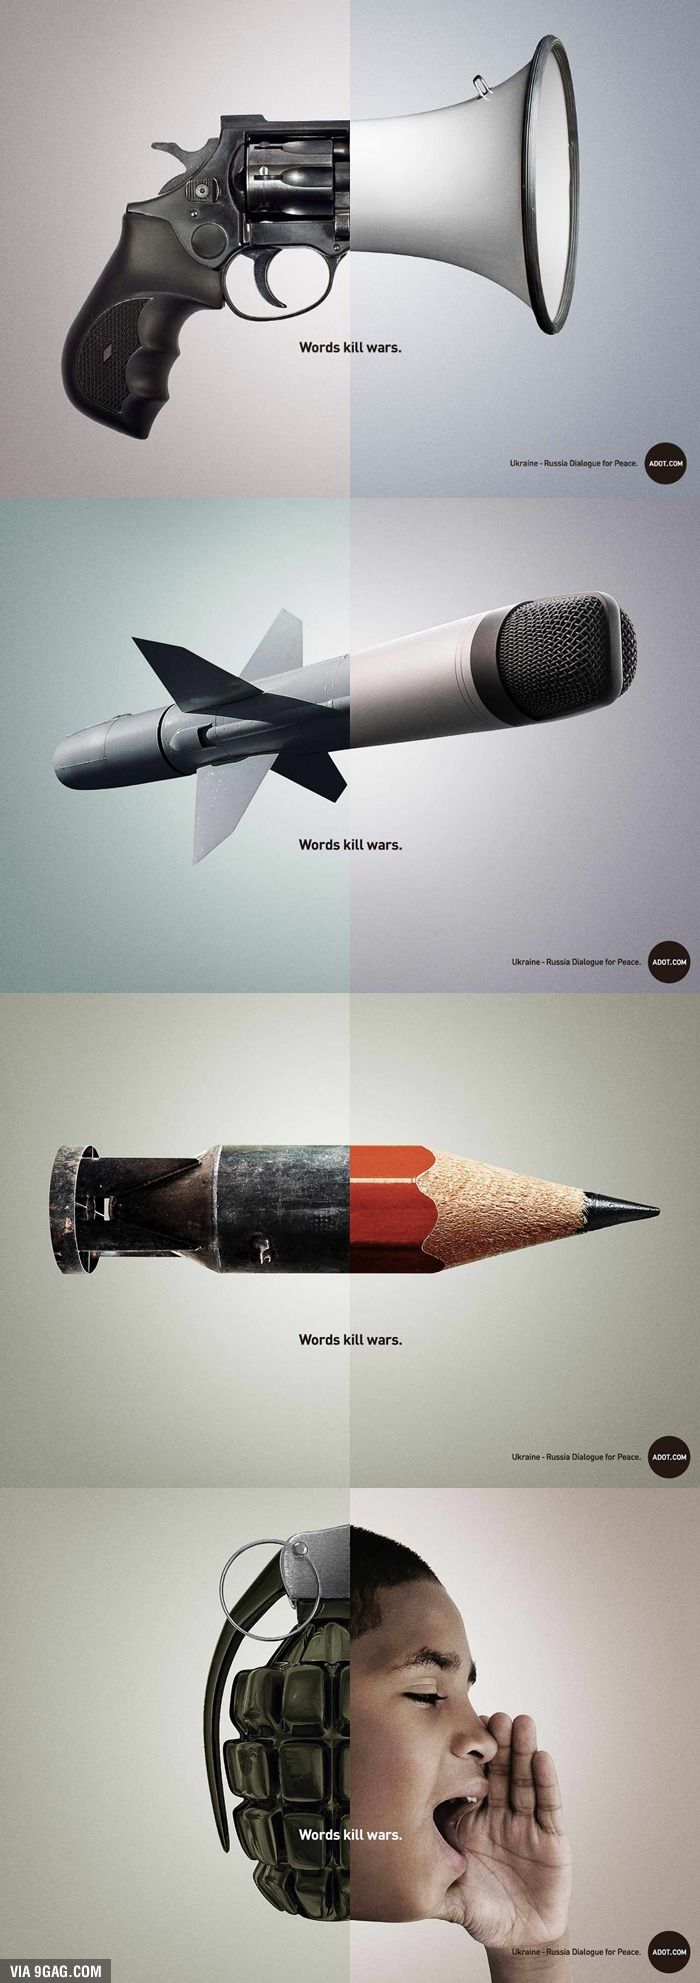 This ad promotes talking about issues instead of resorting to violence. It transforms weapons into tools that are used to speak.